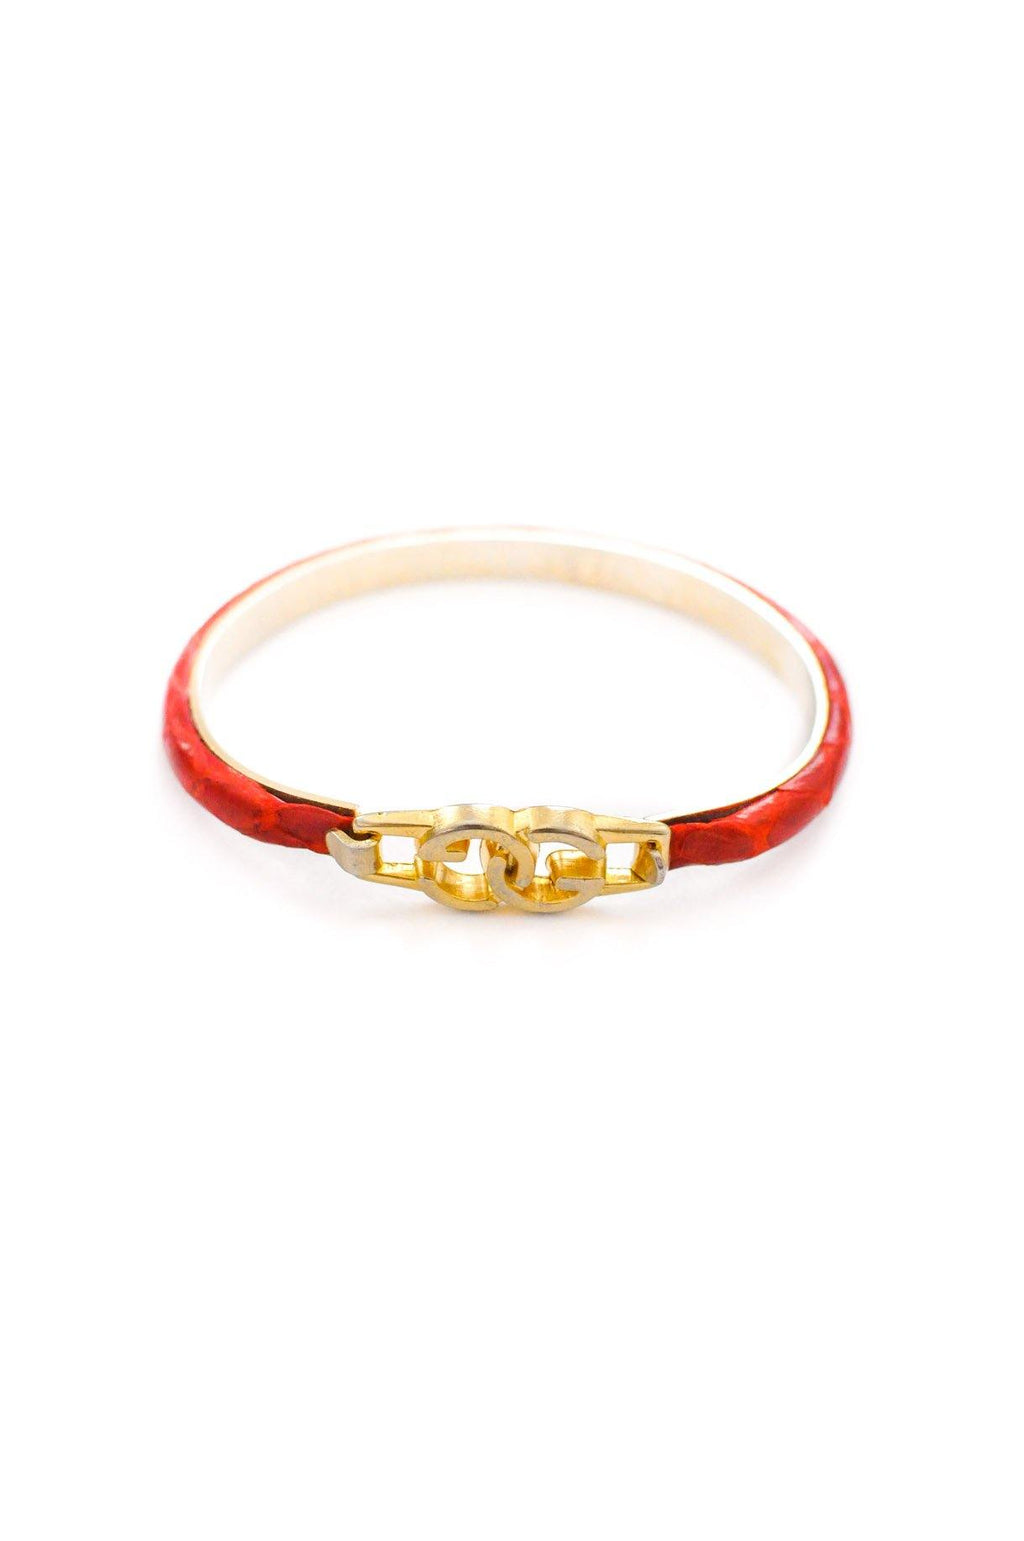 Gucci Red Leather Bracelet